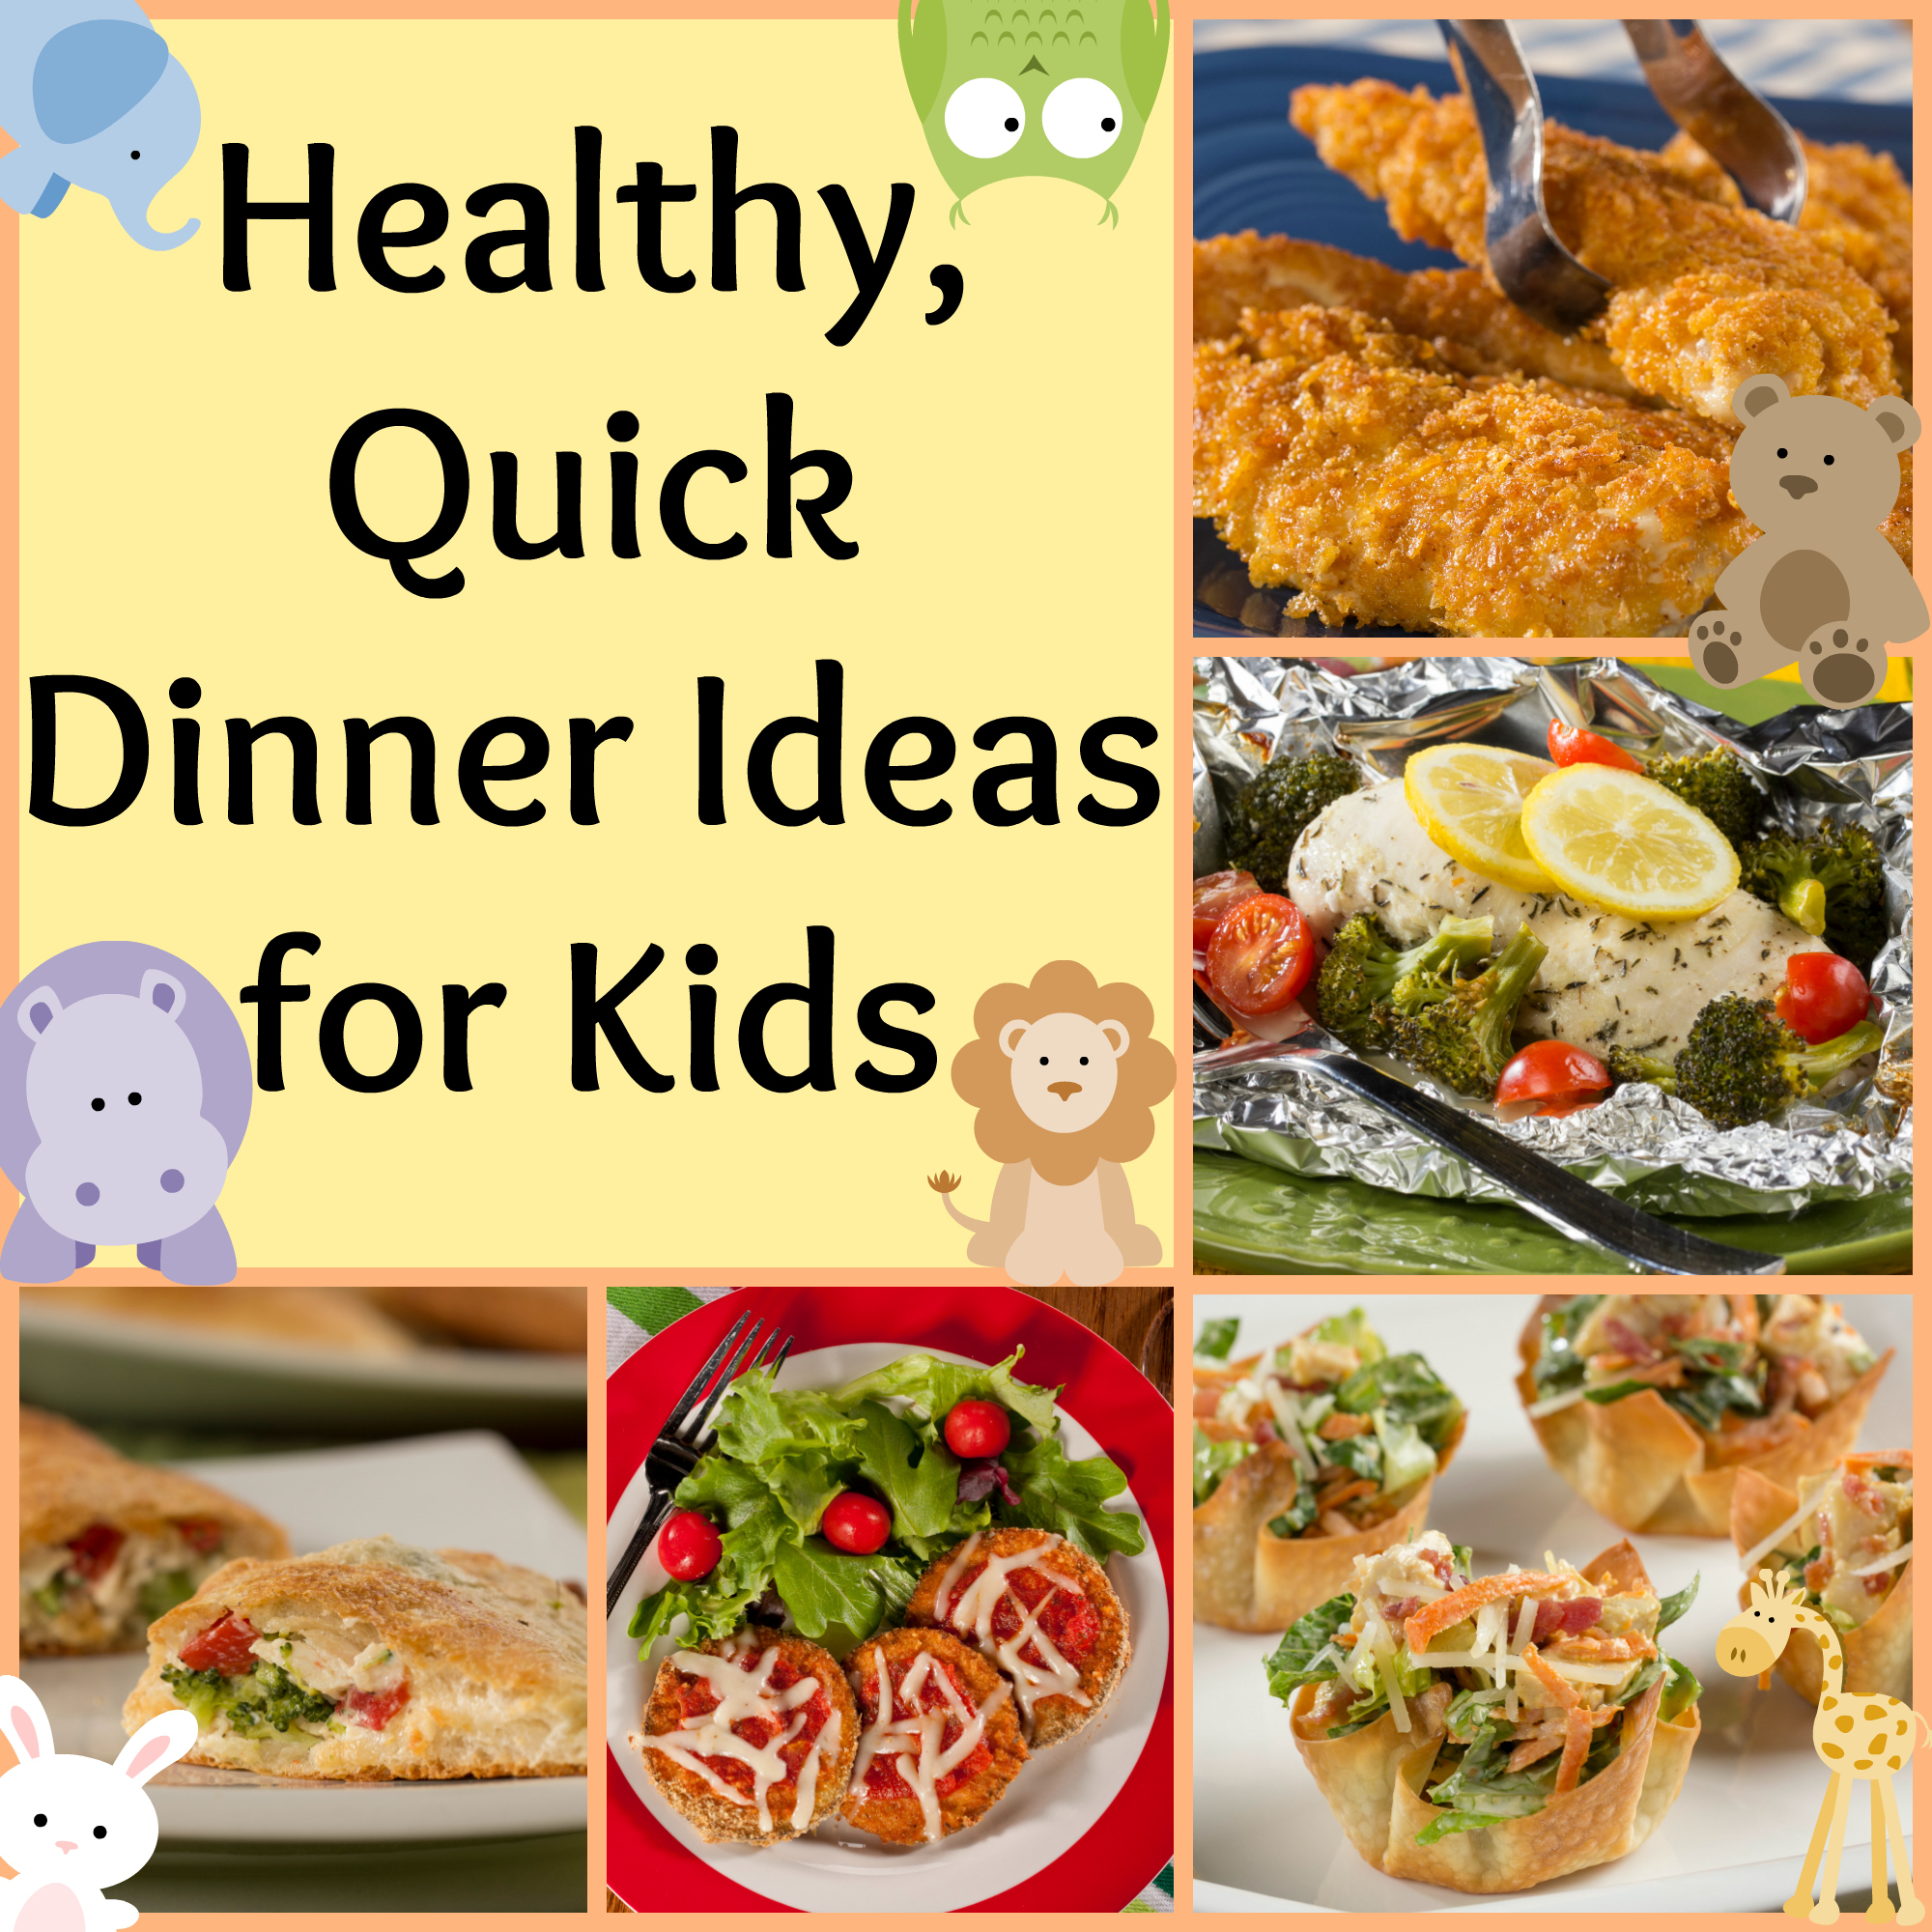 Healthy Quick Dinner Ideas For Kids